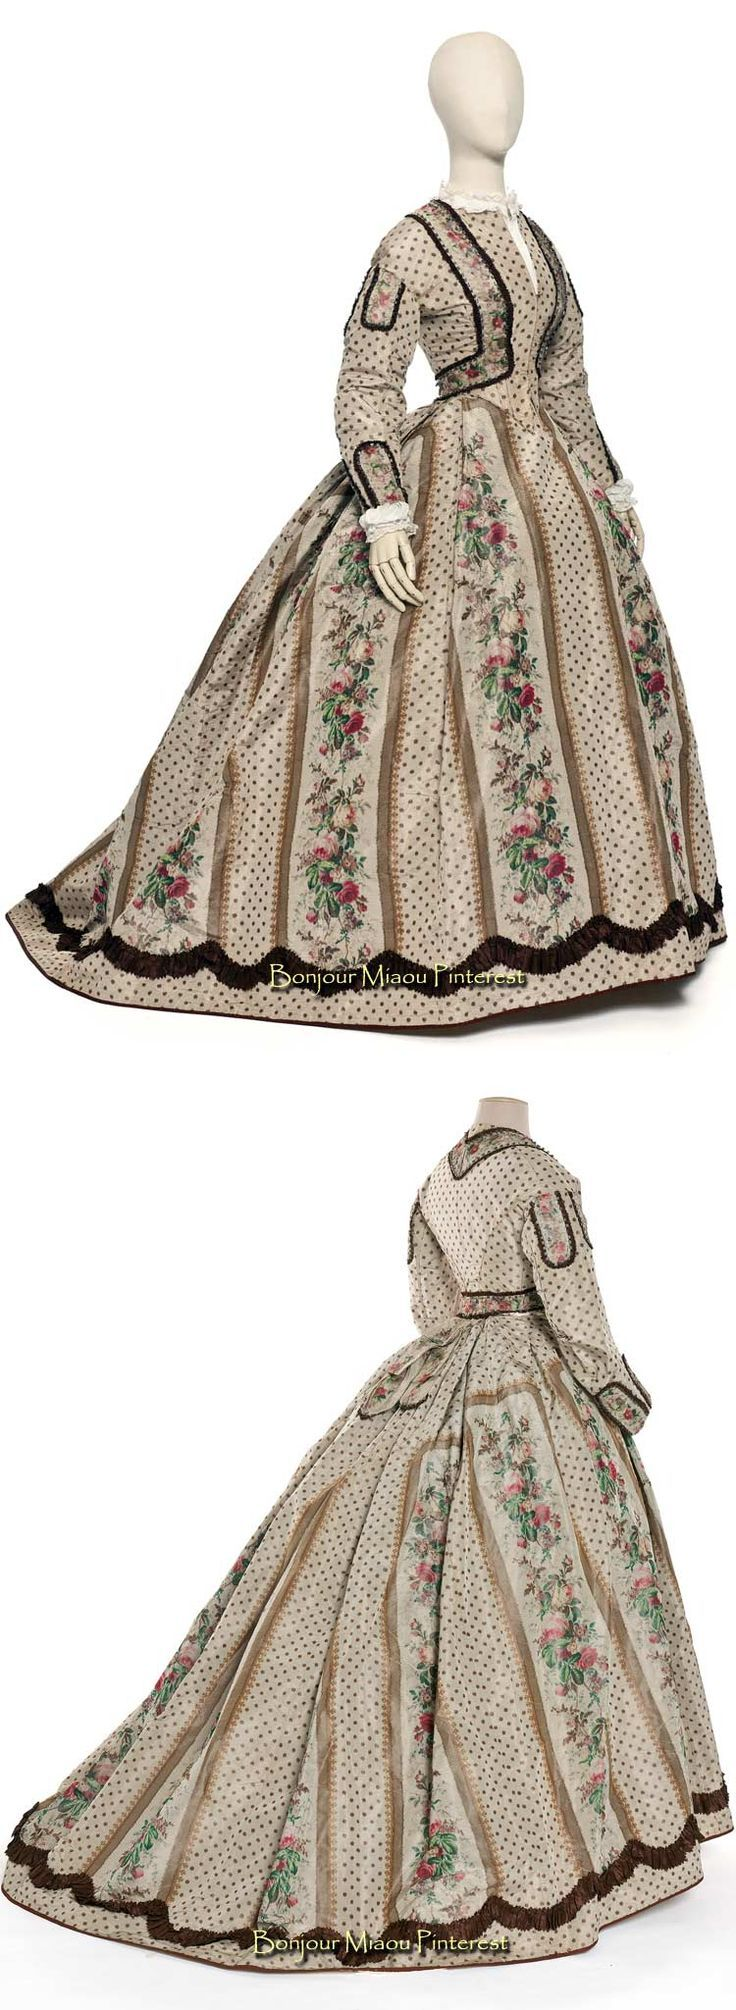 Afternoon dress, 1860. Silk taffeta, two pieces. Photos: Jean Tholance. Les Arts Décoratifs and Europeana Fashion